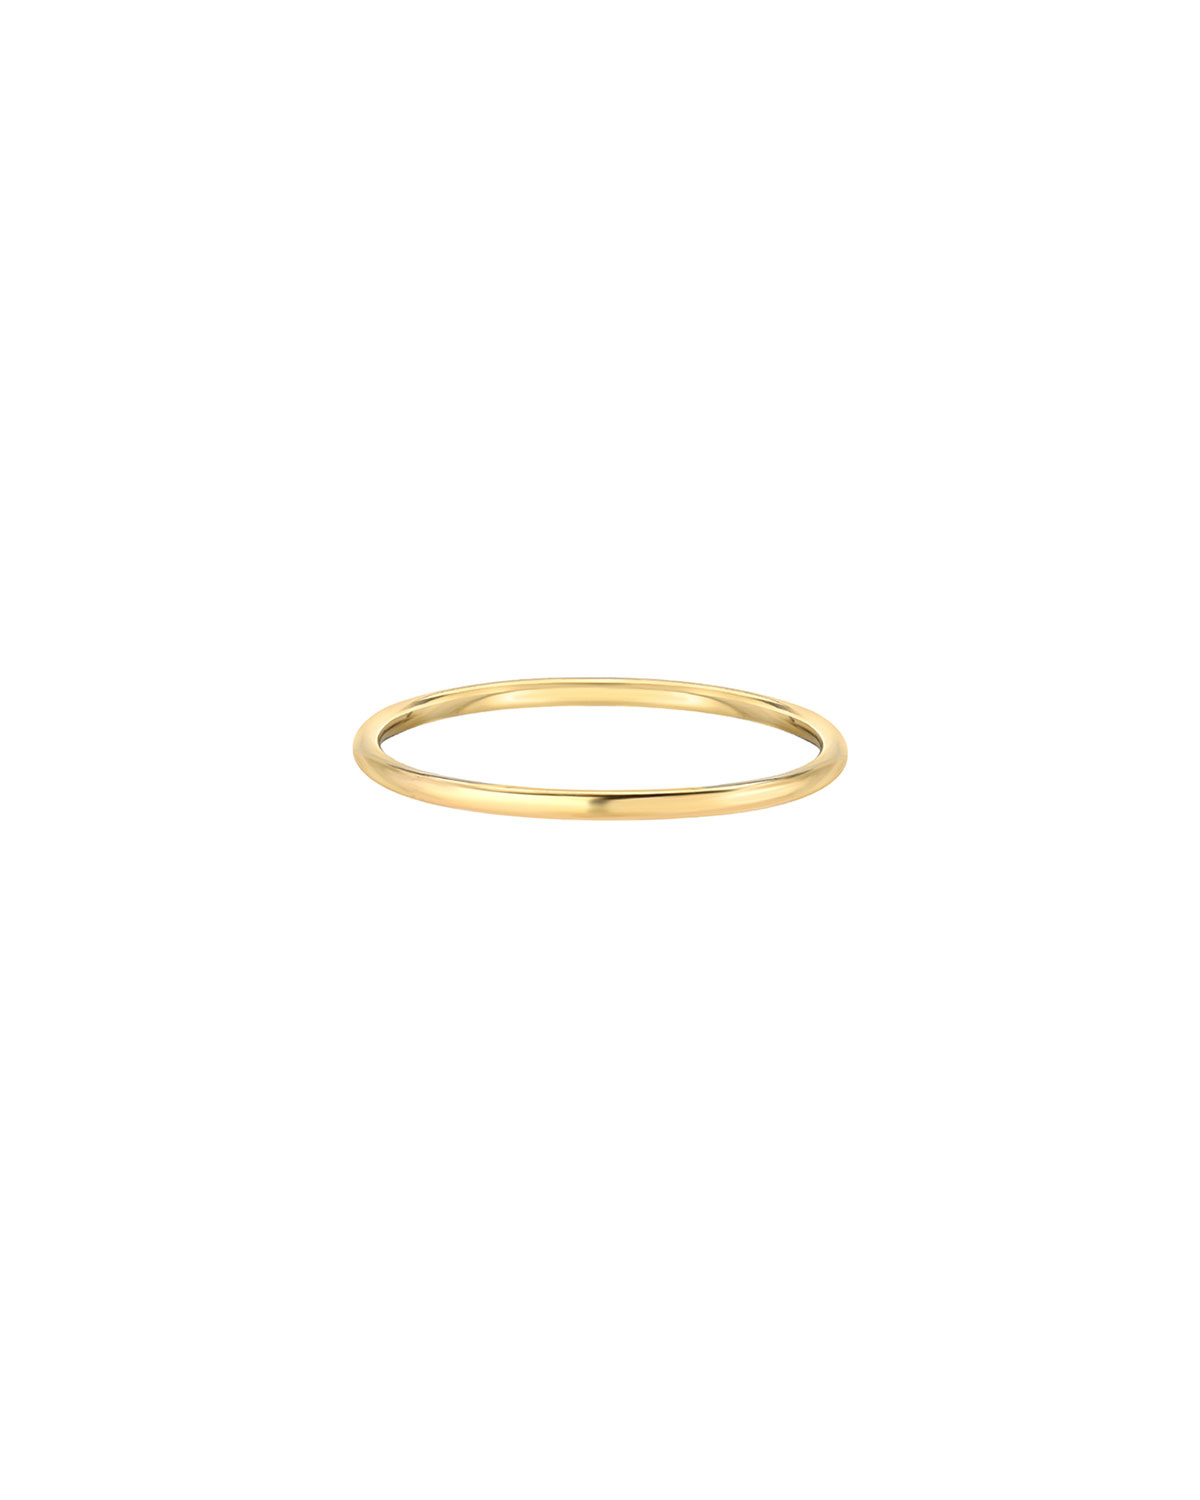 Zoe Lev Jewelry 14k Gold Thin Band Ring, Size 7